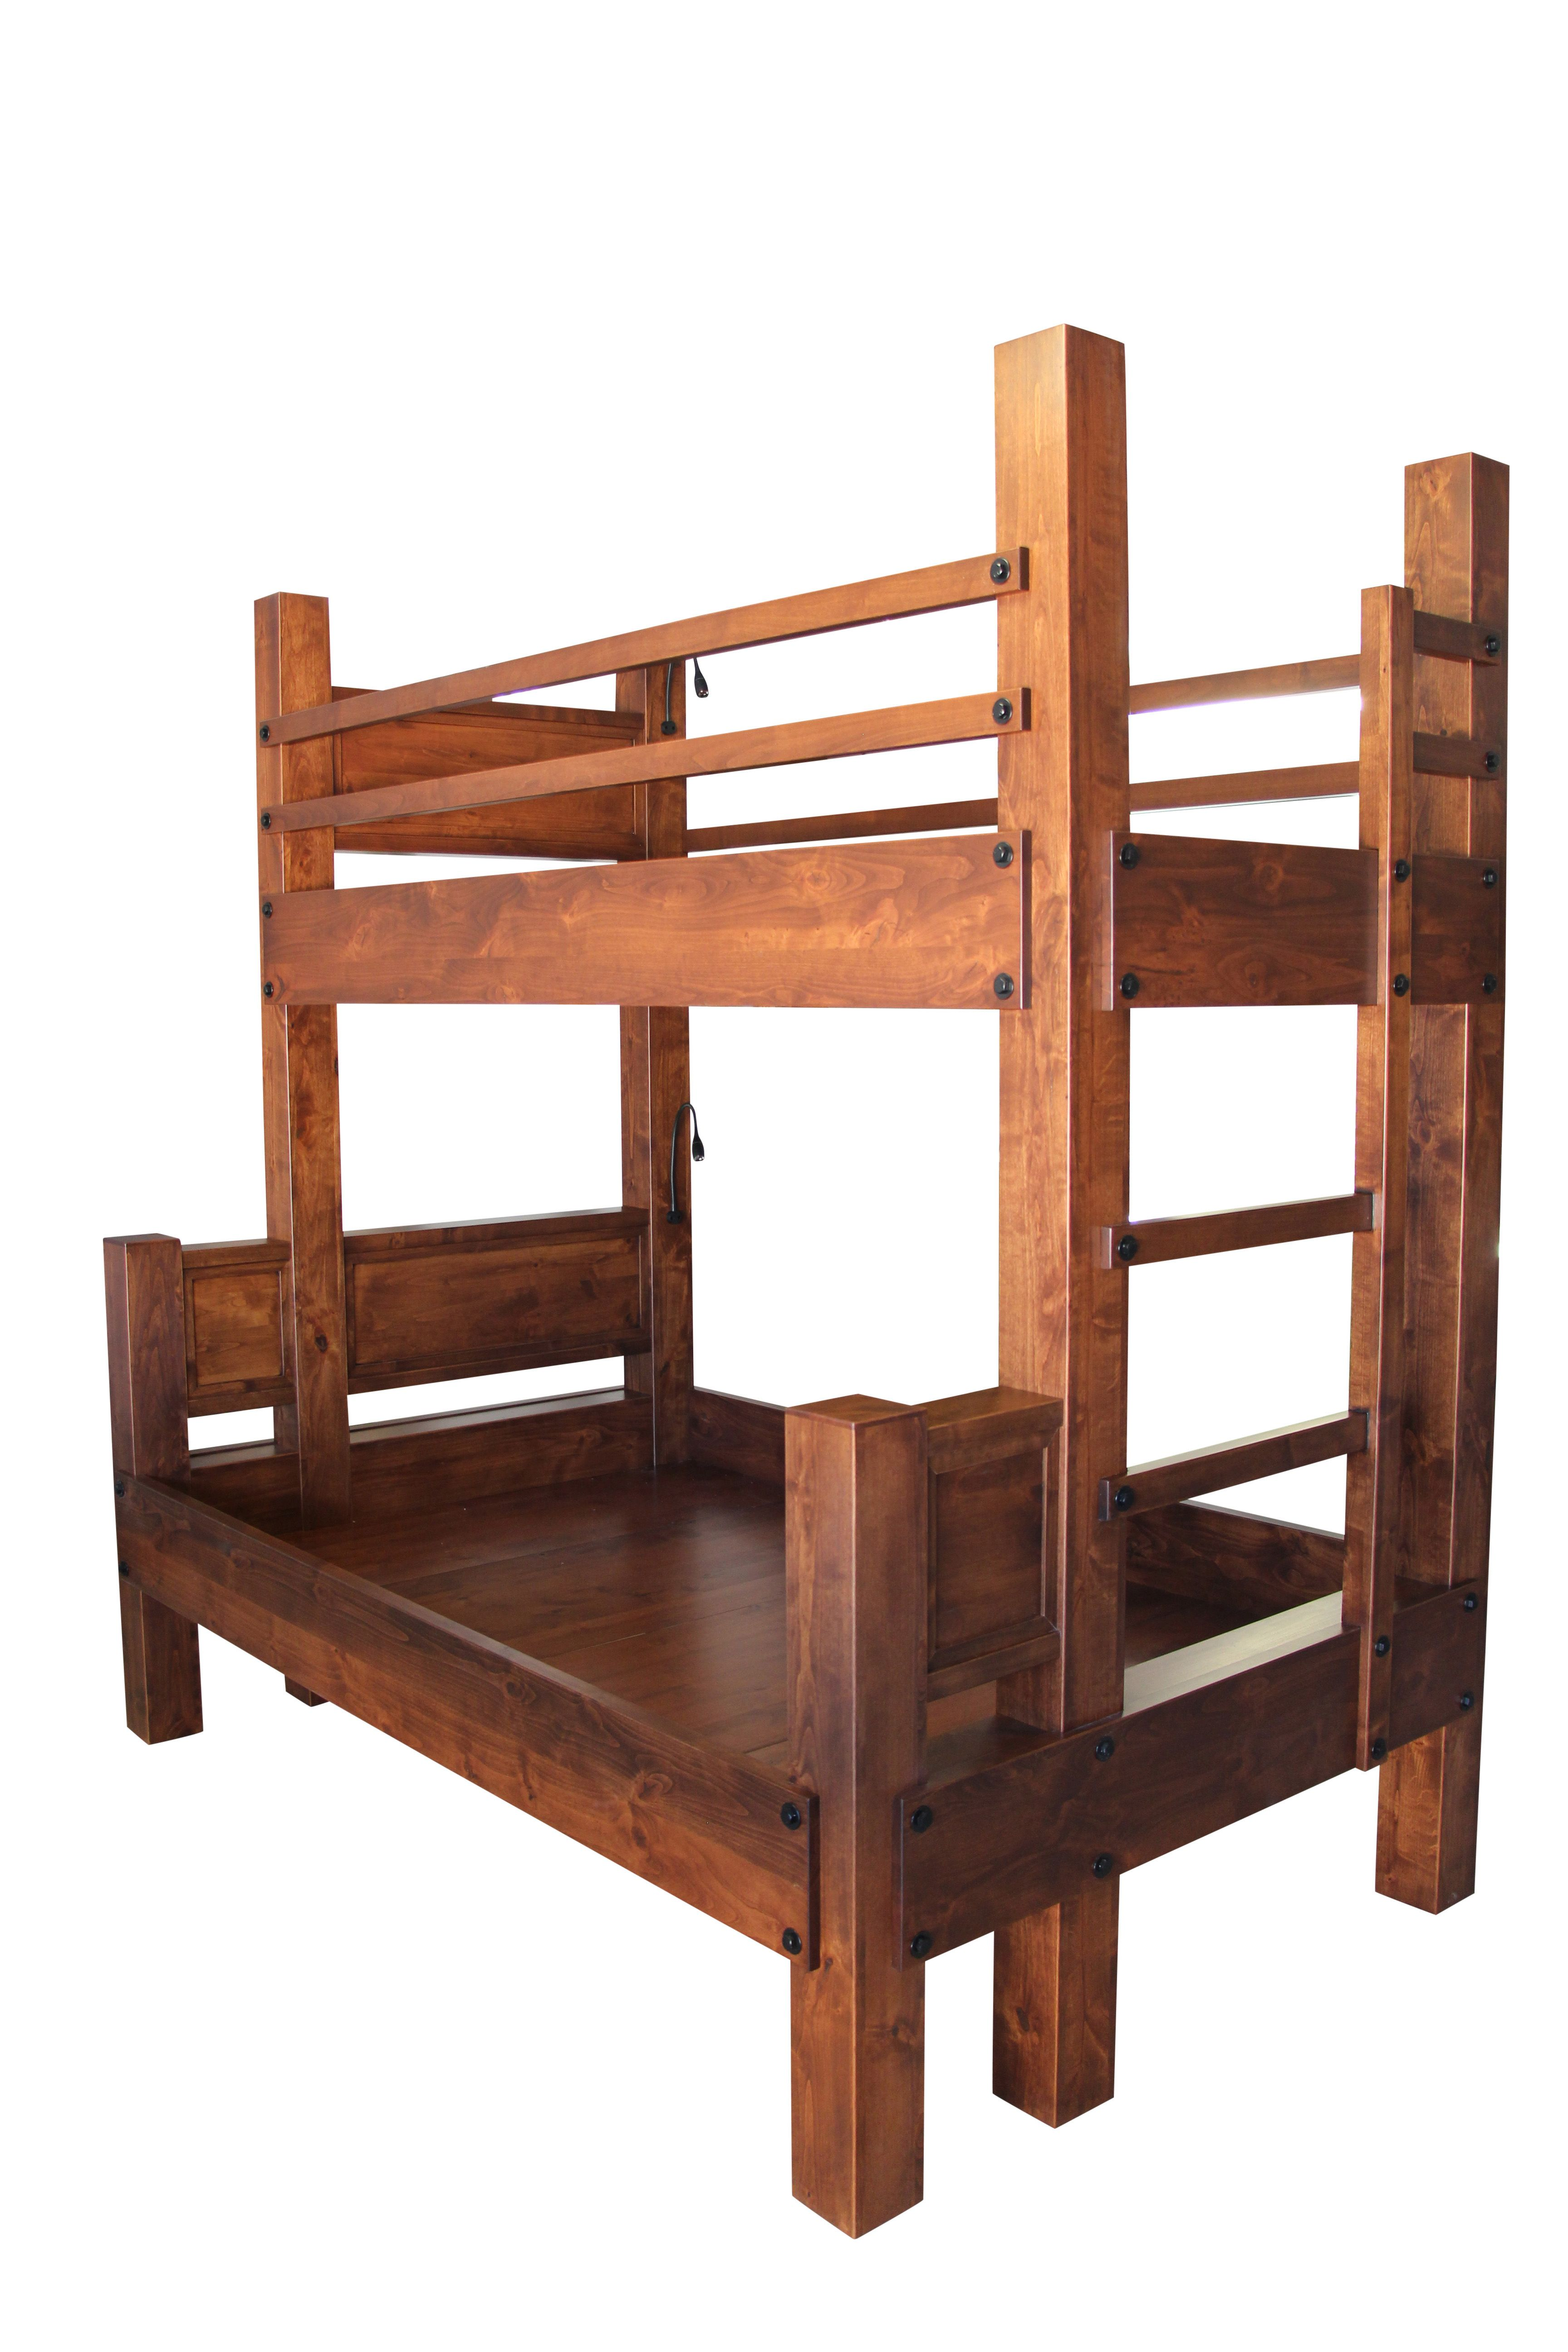 Buy A Hand Crafted Twin Xl Over Full Xl Bunk Bed Made To Order From